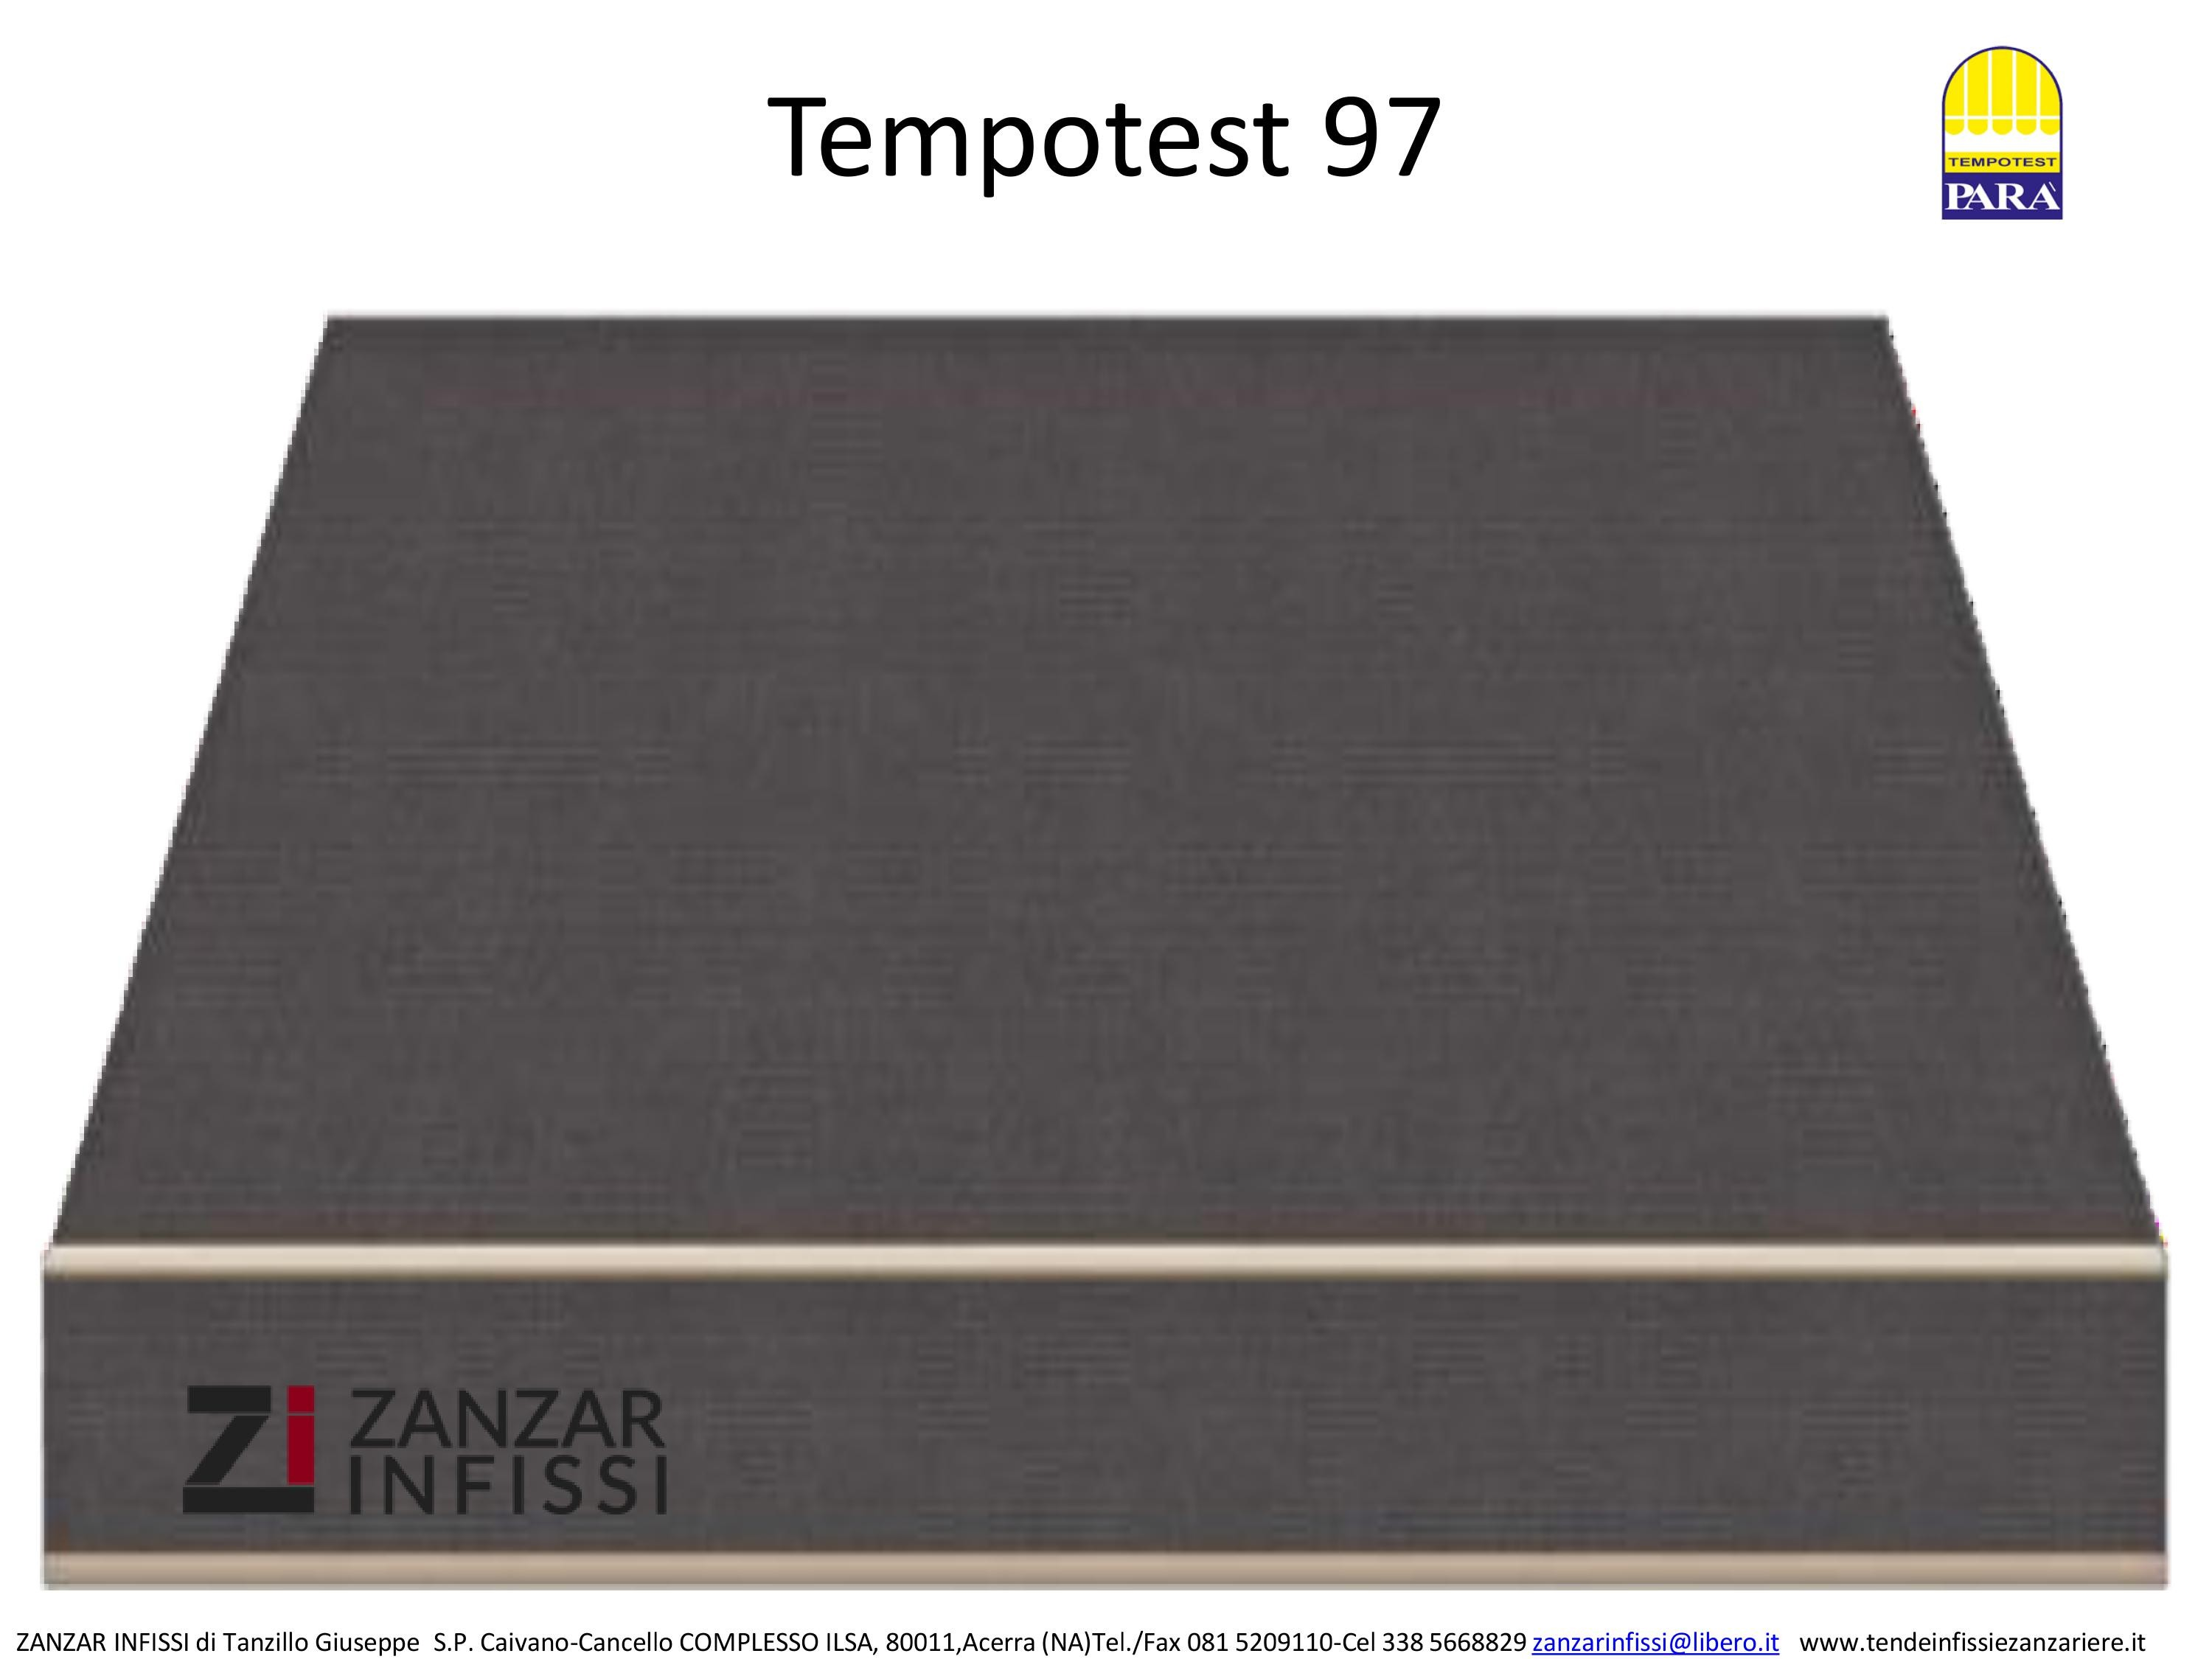 Tempotest 97